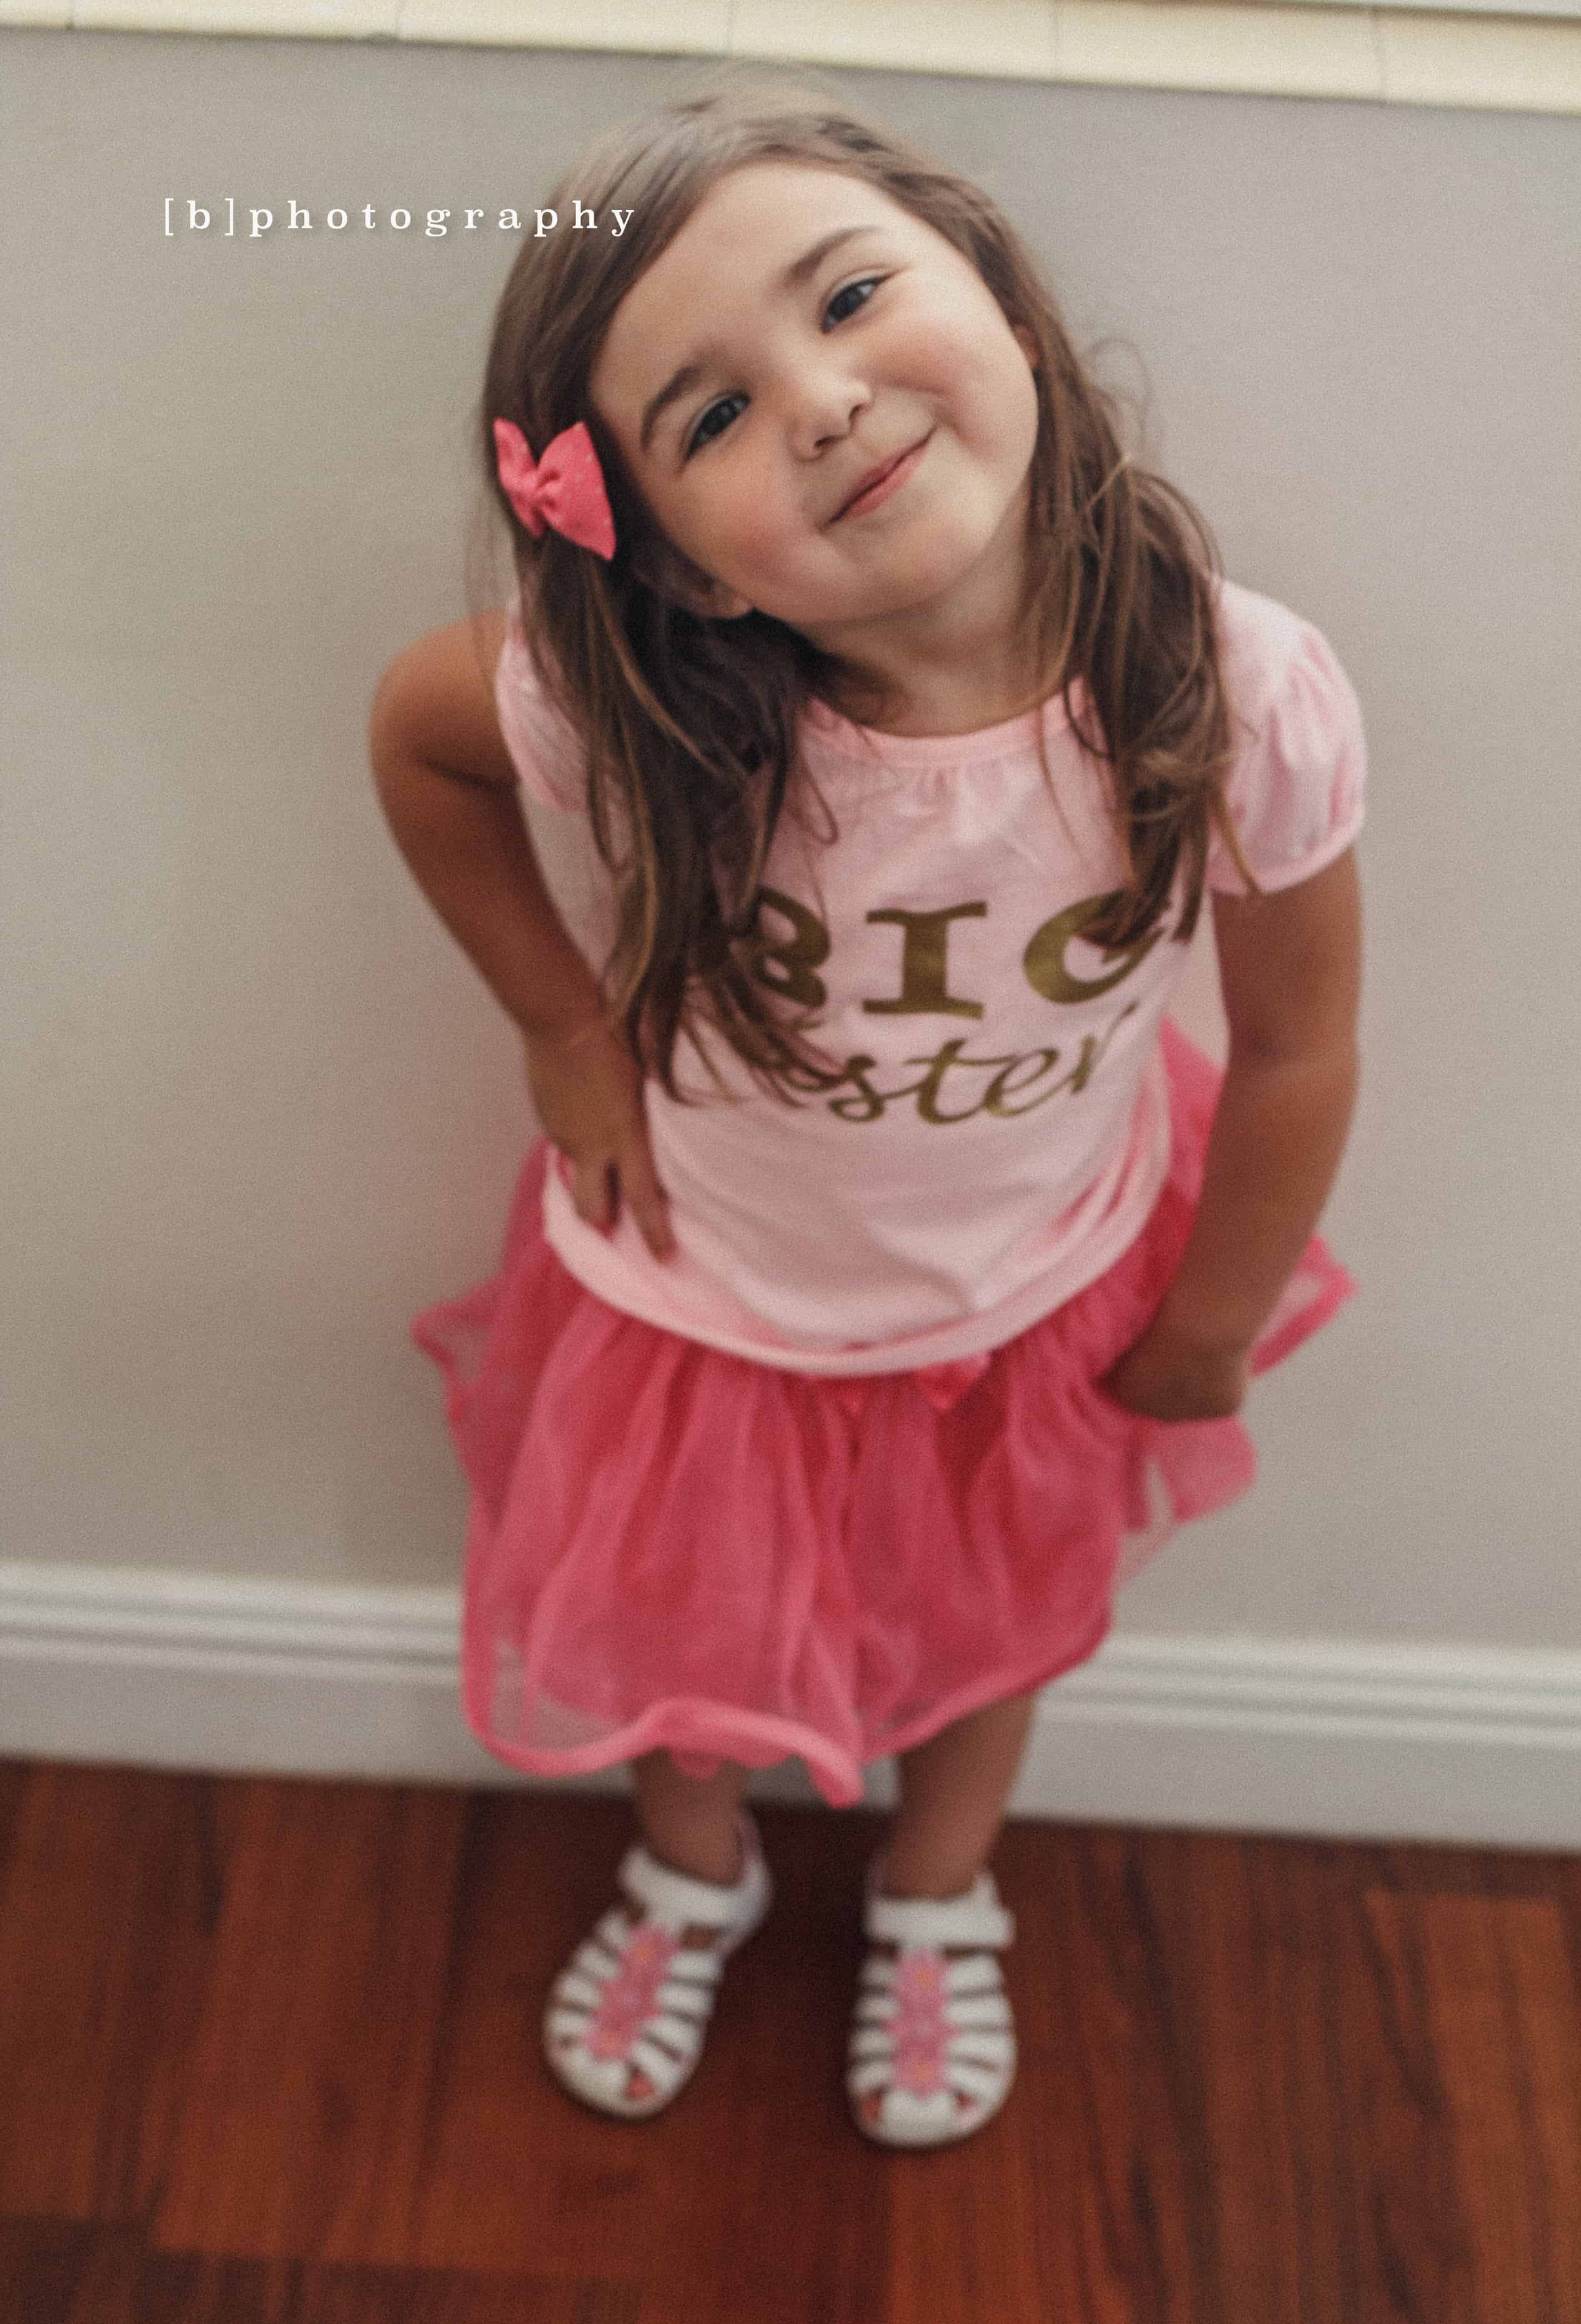 Smiling Girl with a bow in her head wearing all pink with a hand on her hip